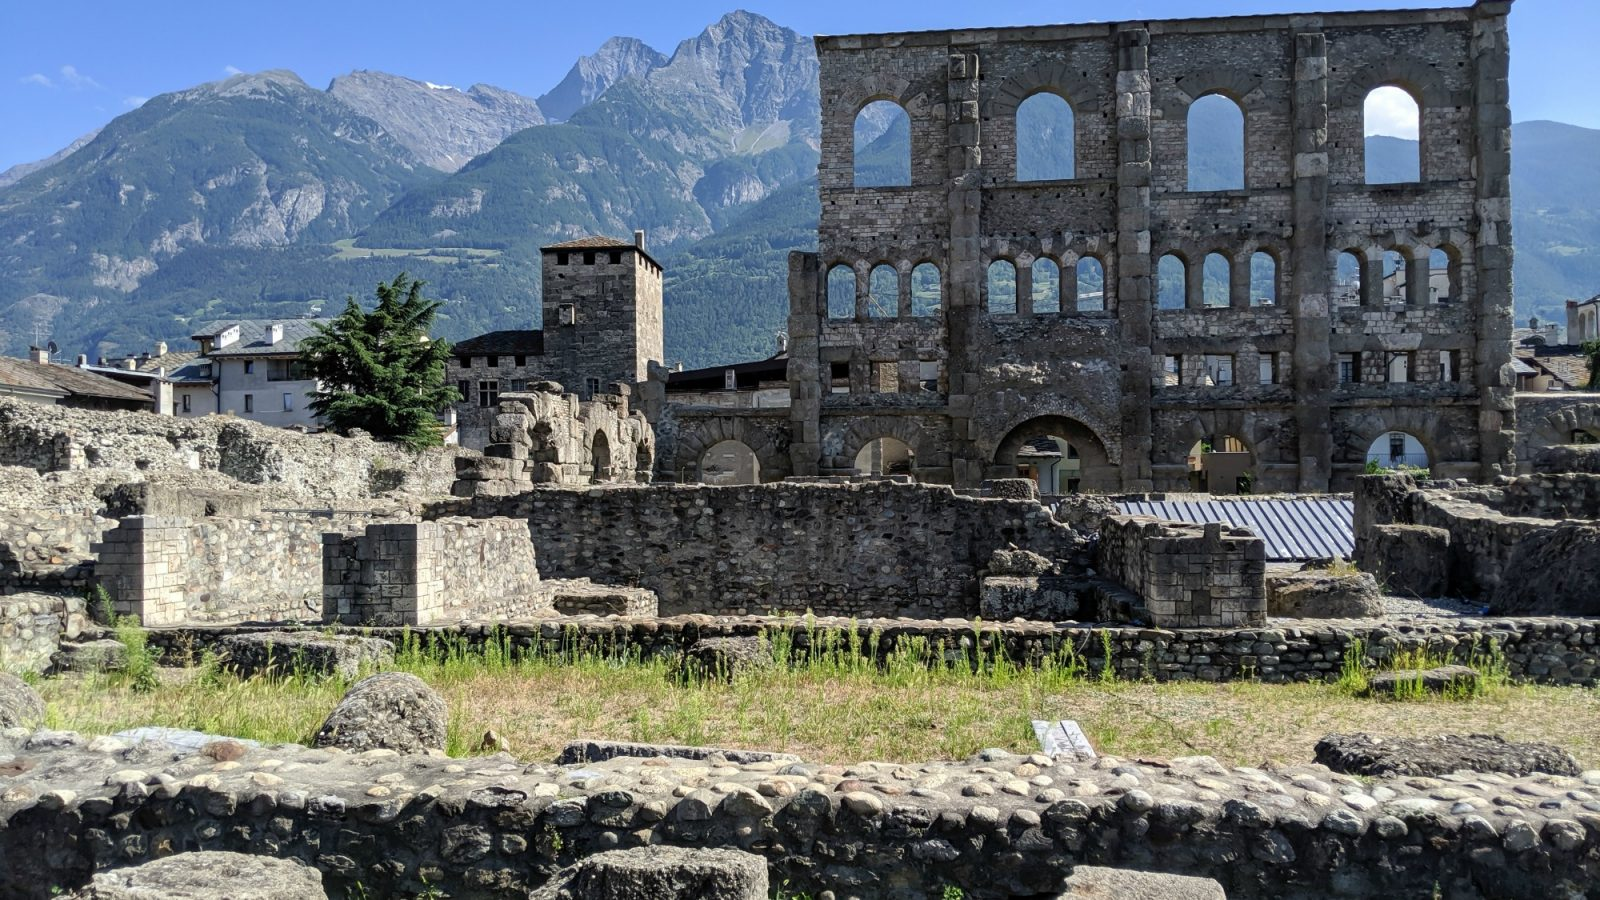 Roman Theater, roman ruins   How to Spend 1 Day in Aosta, Italy // The Capital of the Aosta Valley   Things to see in Aosta, Things to do in Aosta, Where to eat in Aosta, the smallest of Italy's 20 regions #aosta #italy #aostavalley #traveltips #timebudgettravel #romanruins #ancient #ruins